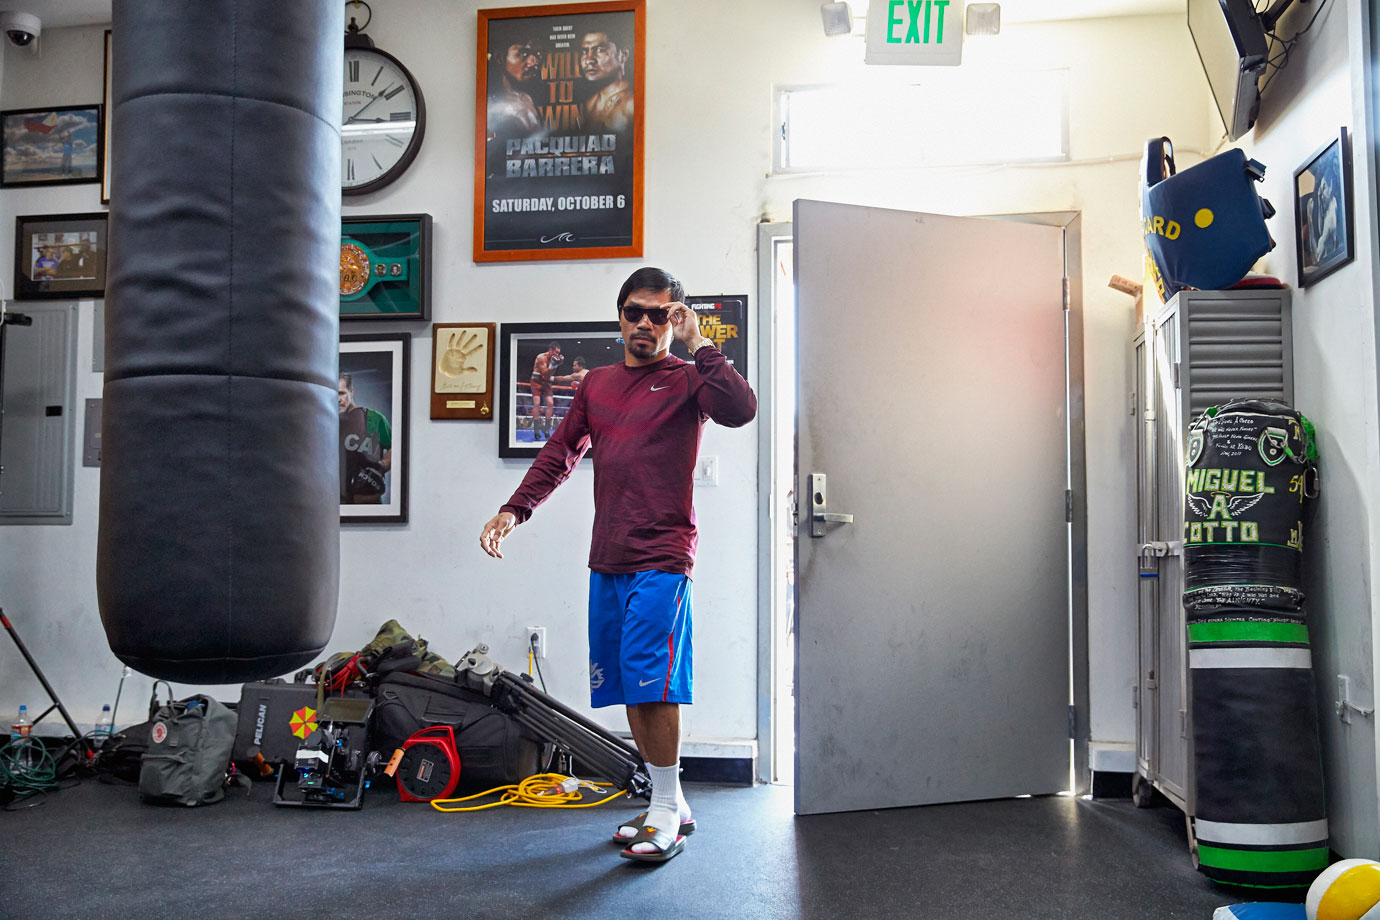 Back in his private gym, though, Pacquiao is happy to train away from the glare.